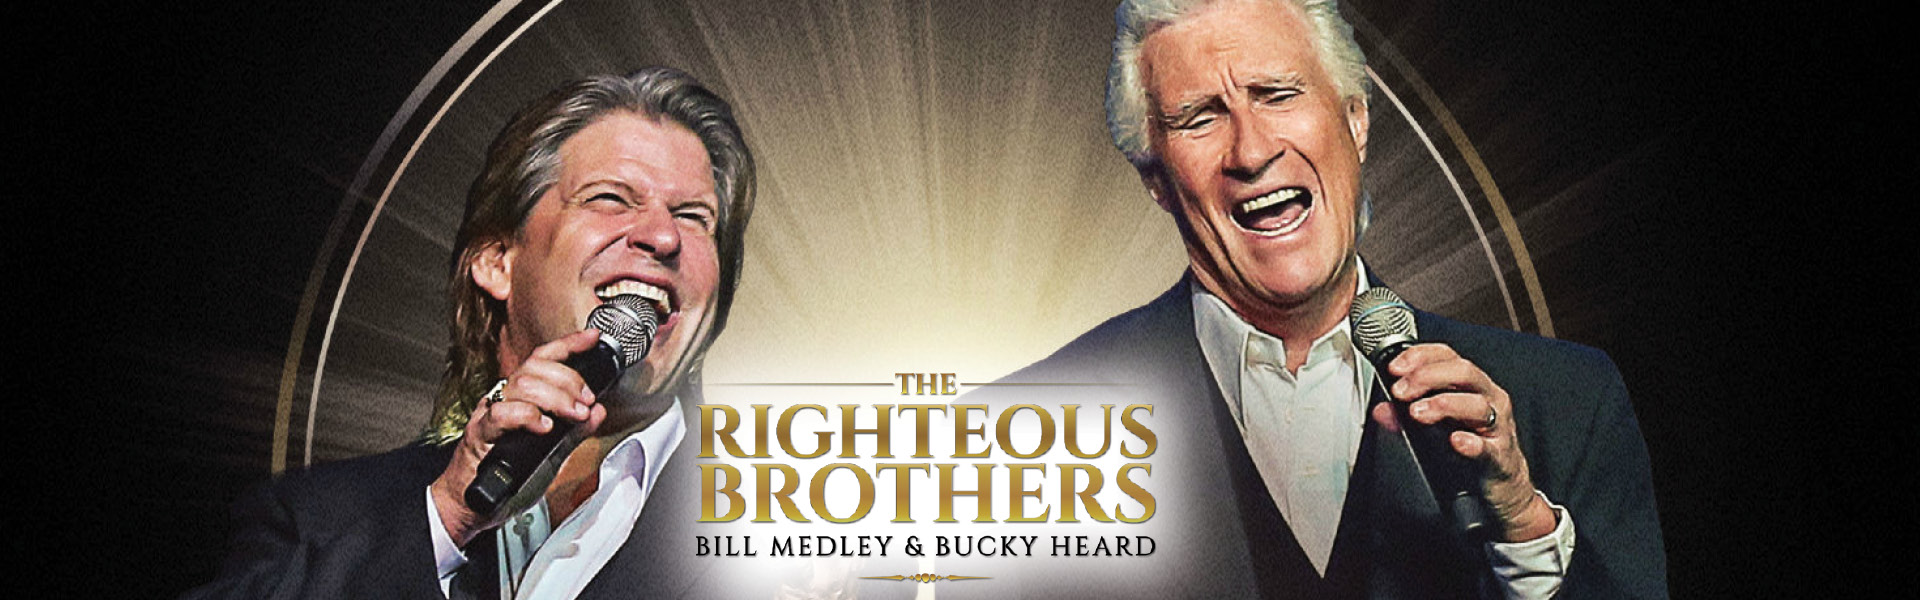 Picture of music group The Righteous Brothers